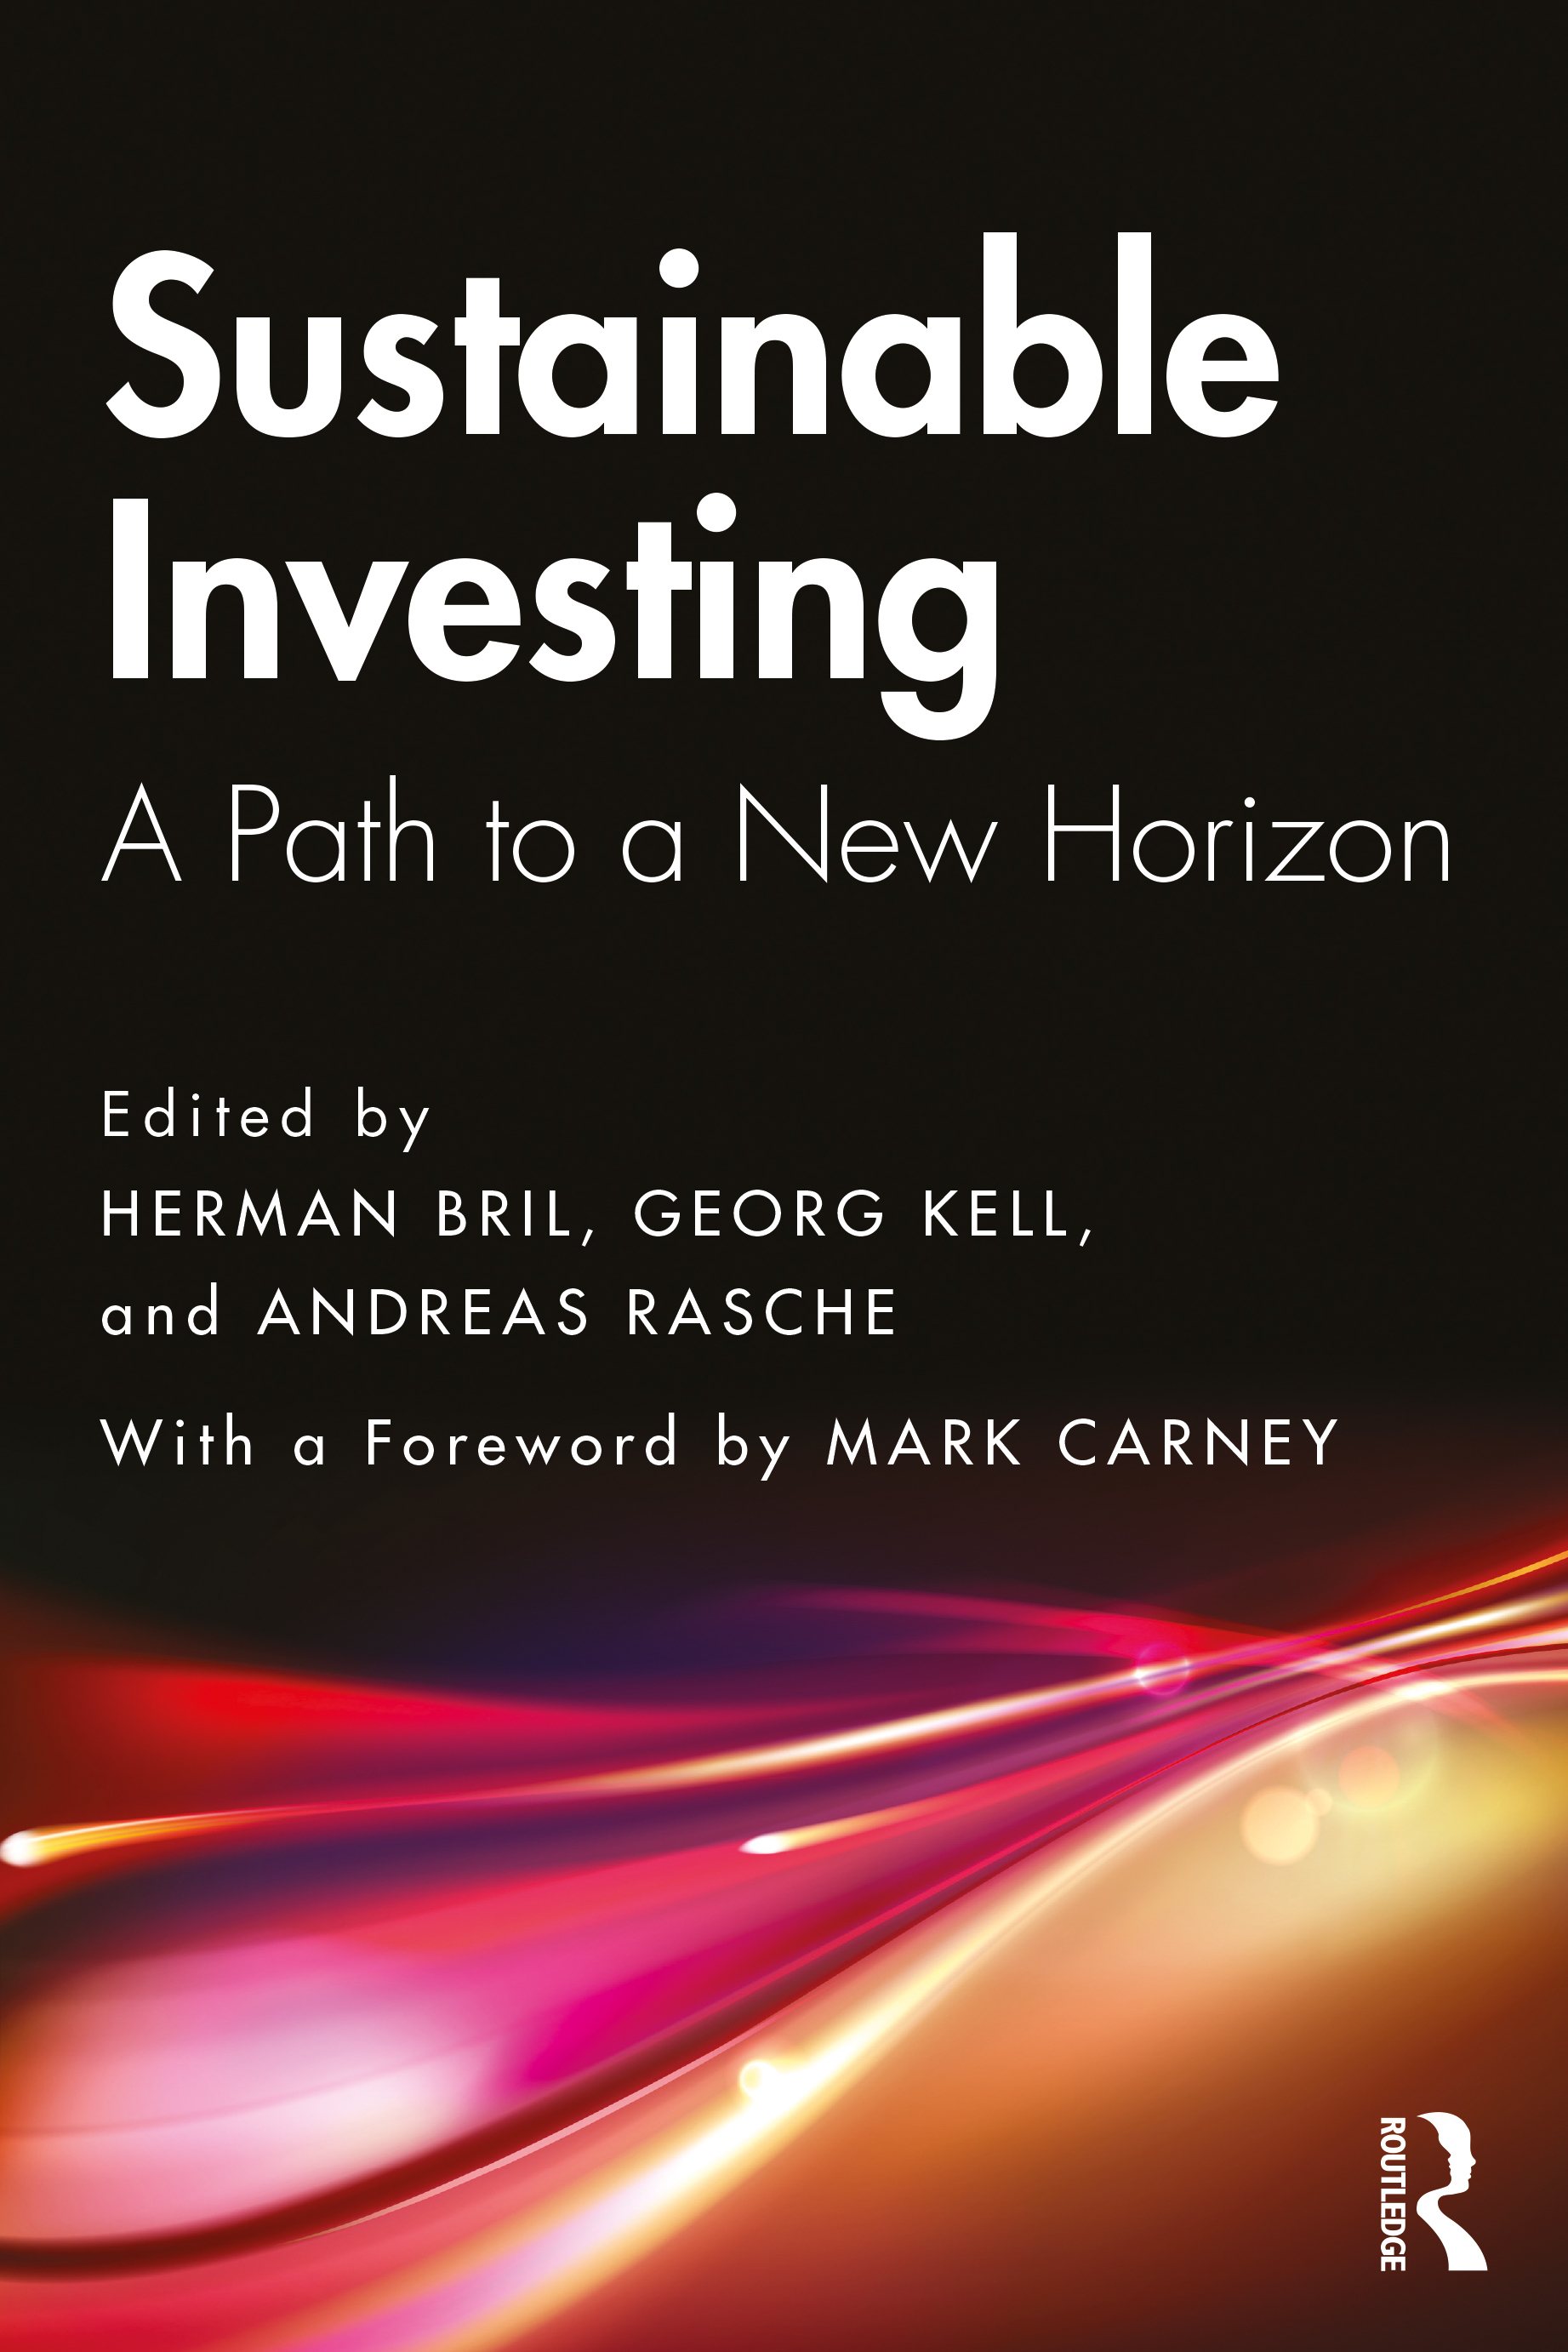 Sustainable Investing: A Path to a New Horizon, looks at the historic convergence between corporate sustainability and sustainable investing.